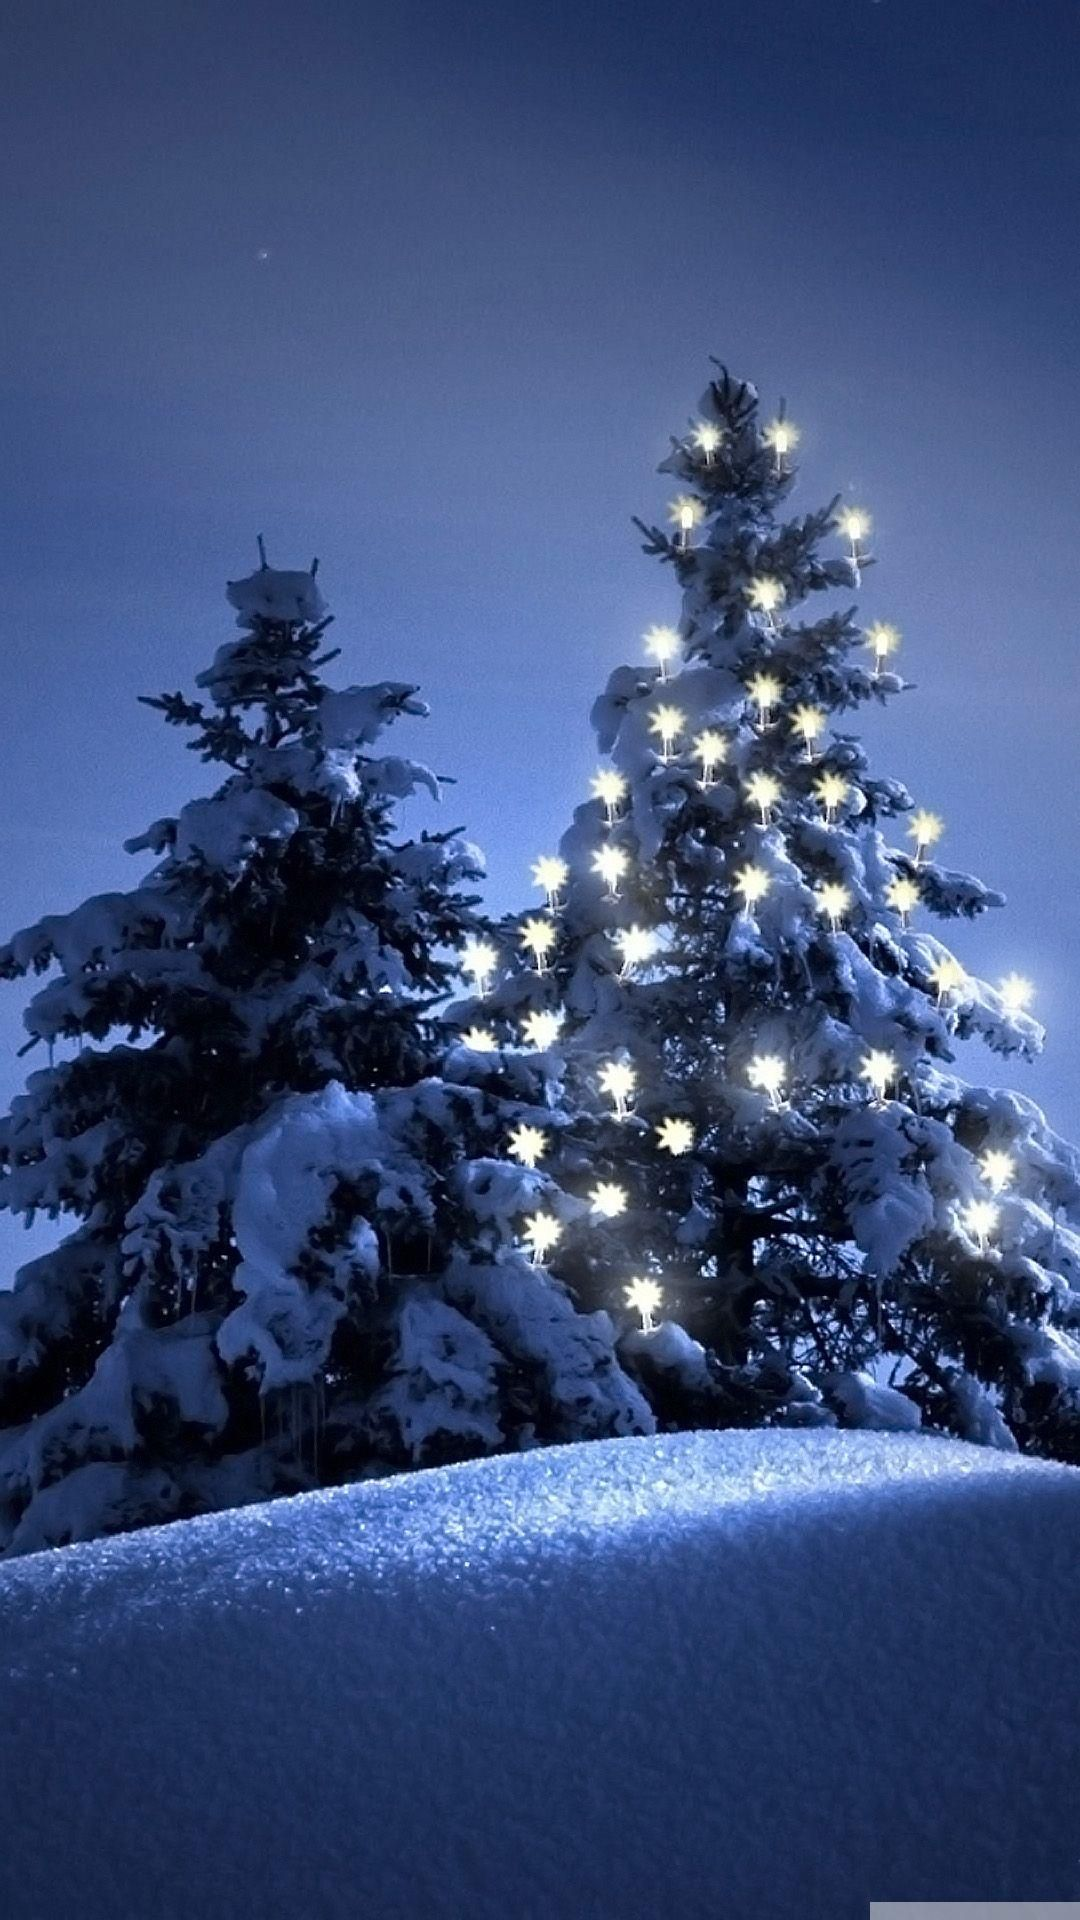 snow-christmas-tree-winter-iphone-6-wallpaper | winter